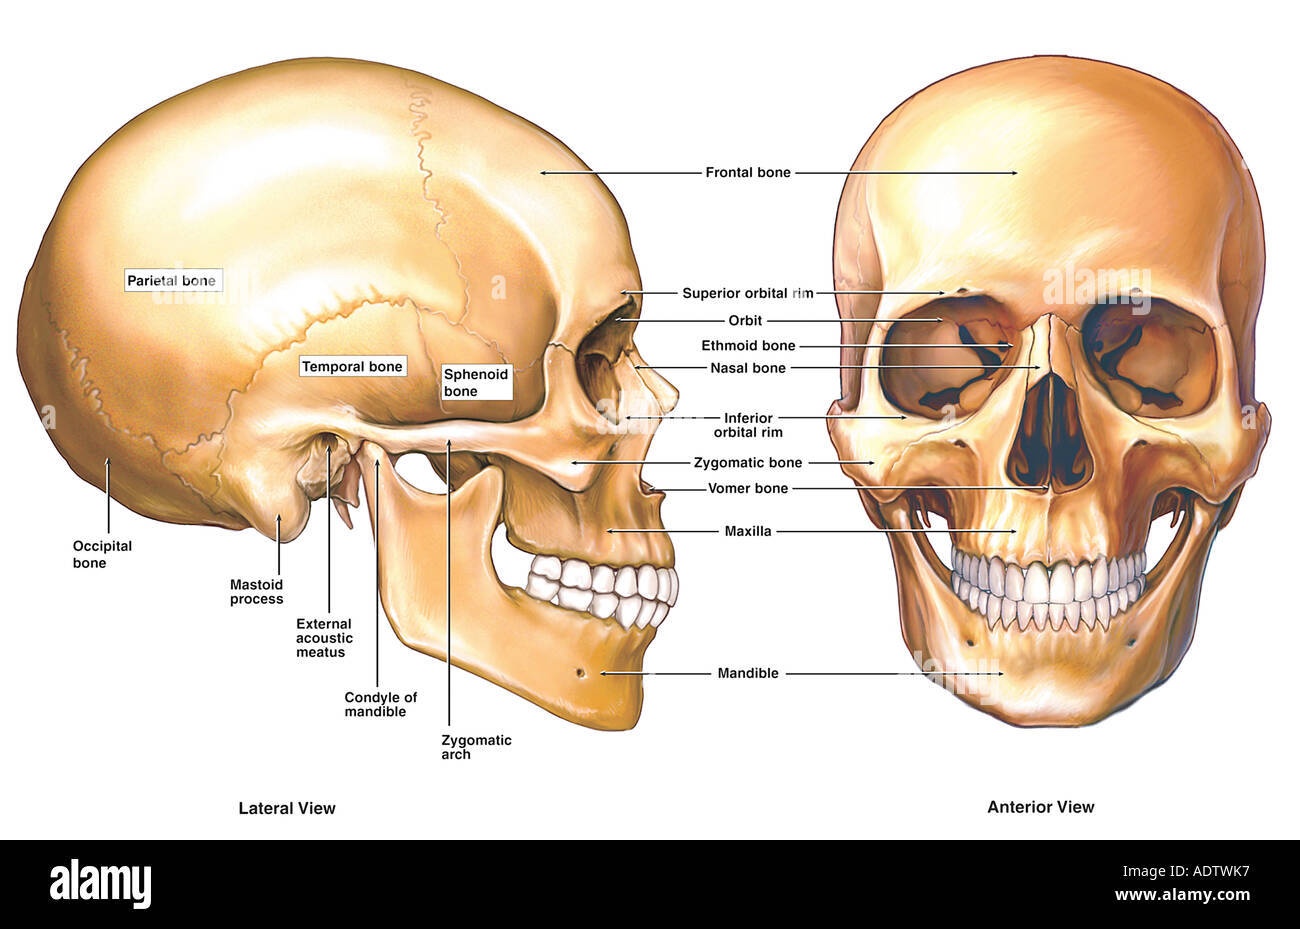 Skull Stock Photos & Skull Stock Images - Page 3 - Alamy